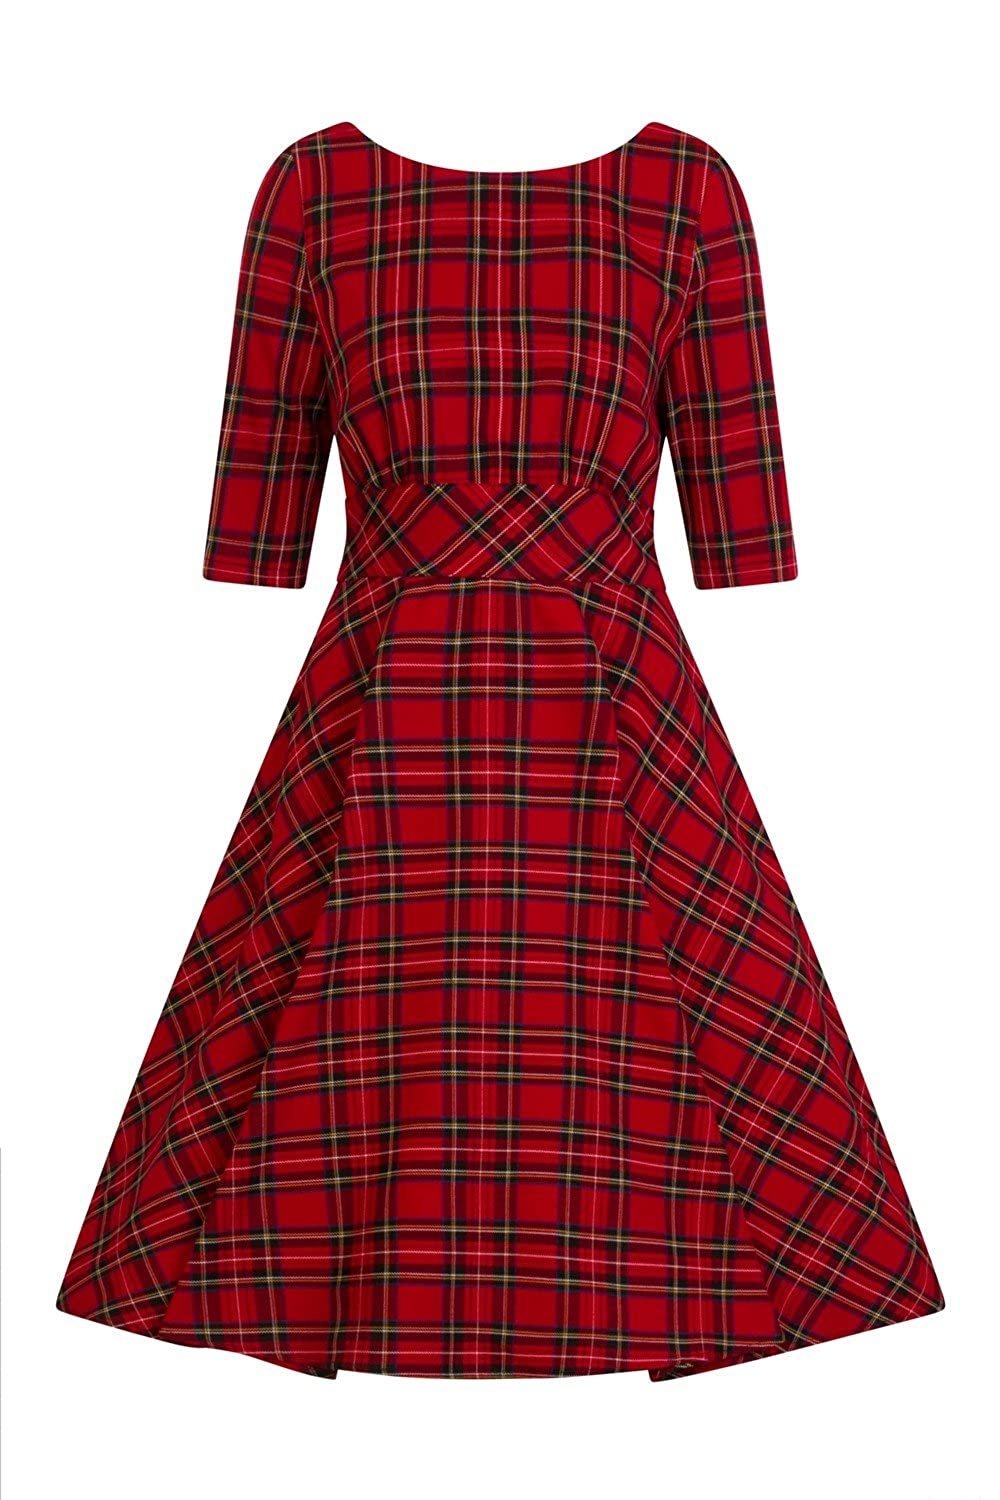 1960s Mad Men Dresses and Clothing Styles Hell Bunny Irvine Tartan 1950s Vintage Retro Dress XS-4XL $72.99 AT vintagedancer.com